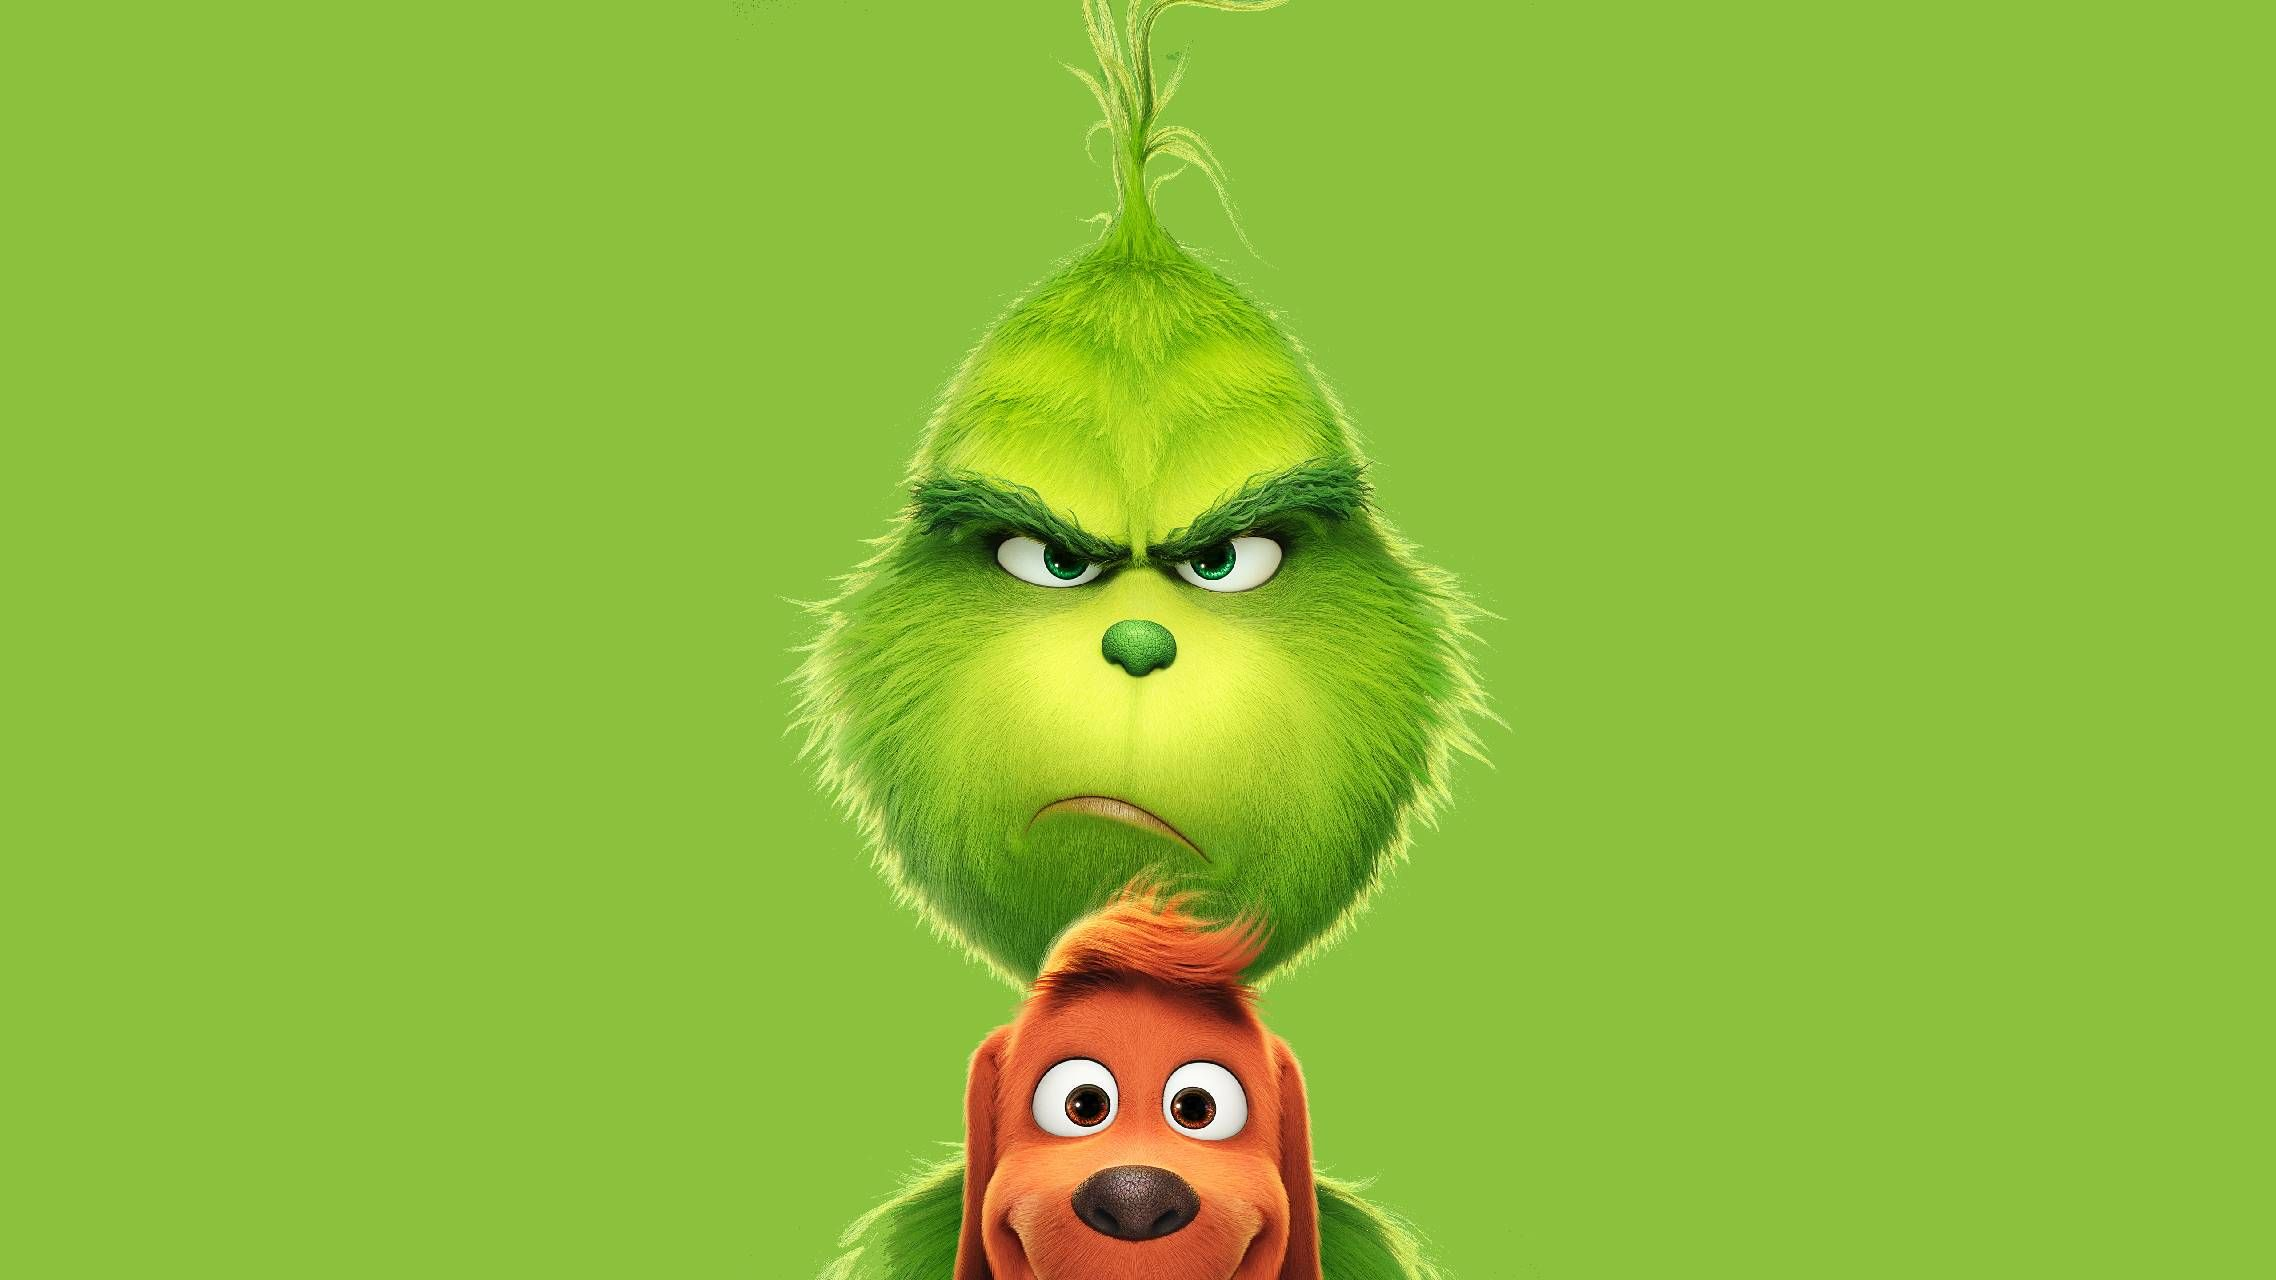 Download Grinch Wallpaper by DonTox c4 Free on ZEDGE